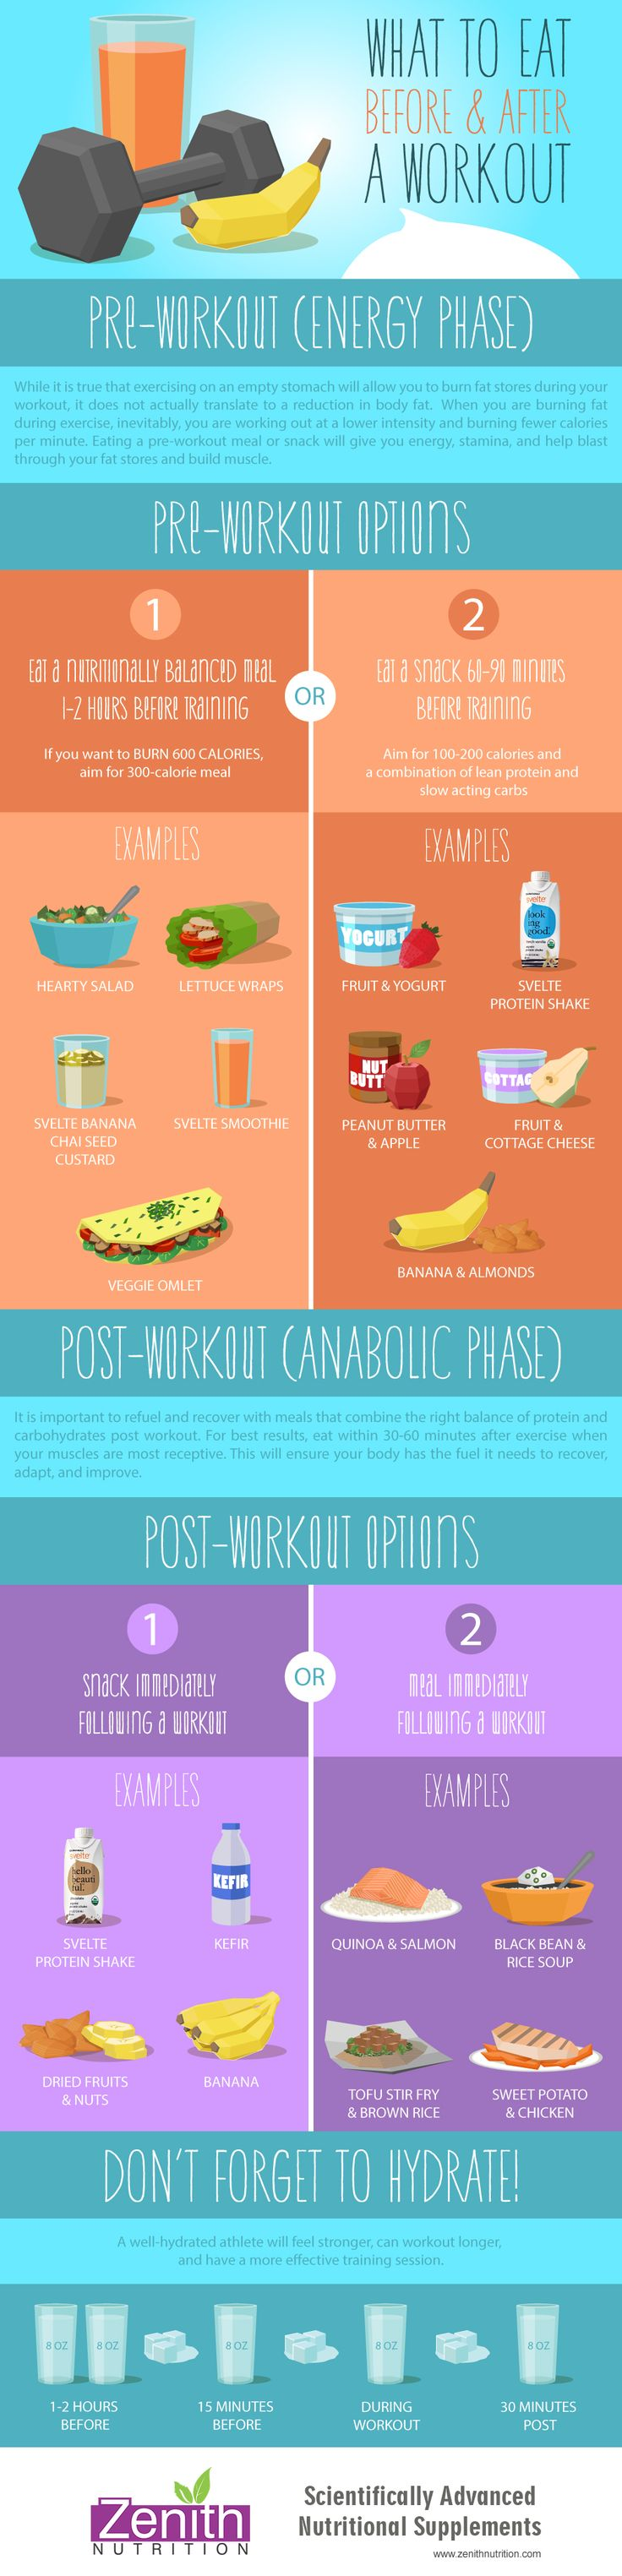 What To Eat Before And After Workout. Preworkout (Enery Phase), Post Work out (Anabolic Phase). Dont forget to hydrate. Best supplements from Zenith Nutrition. Health Supplements. Nutritional Supplements. Health Infographics